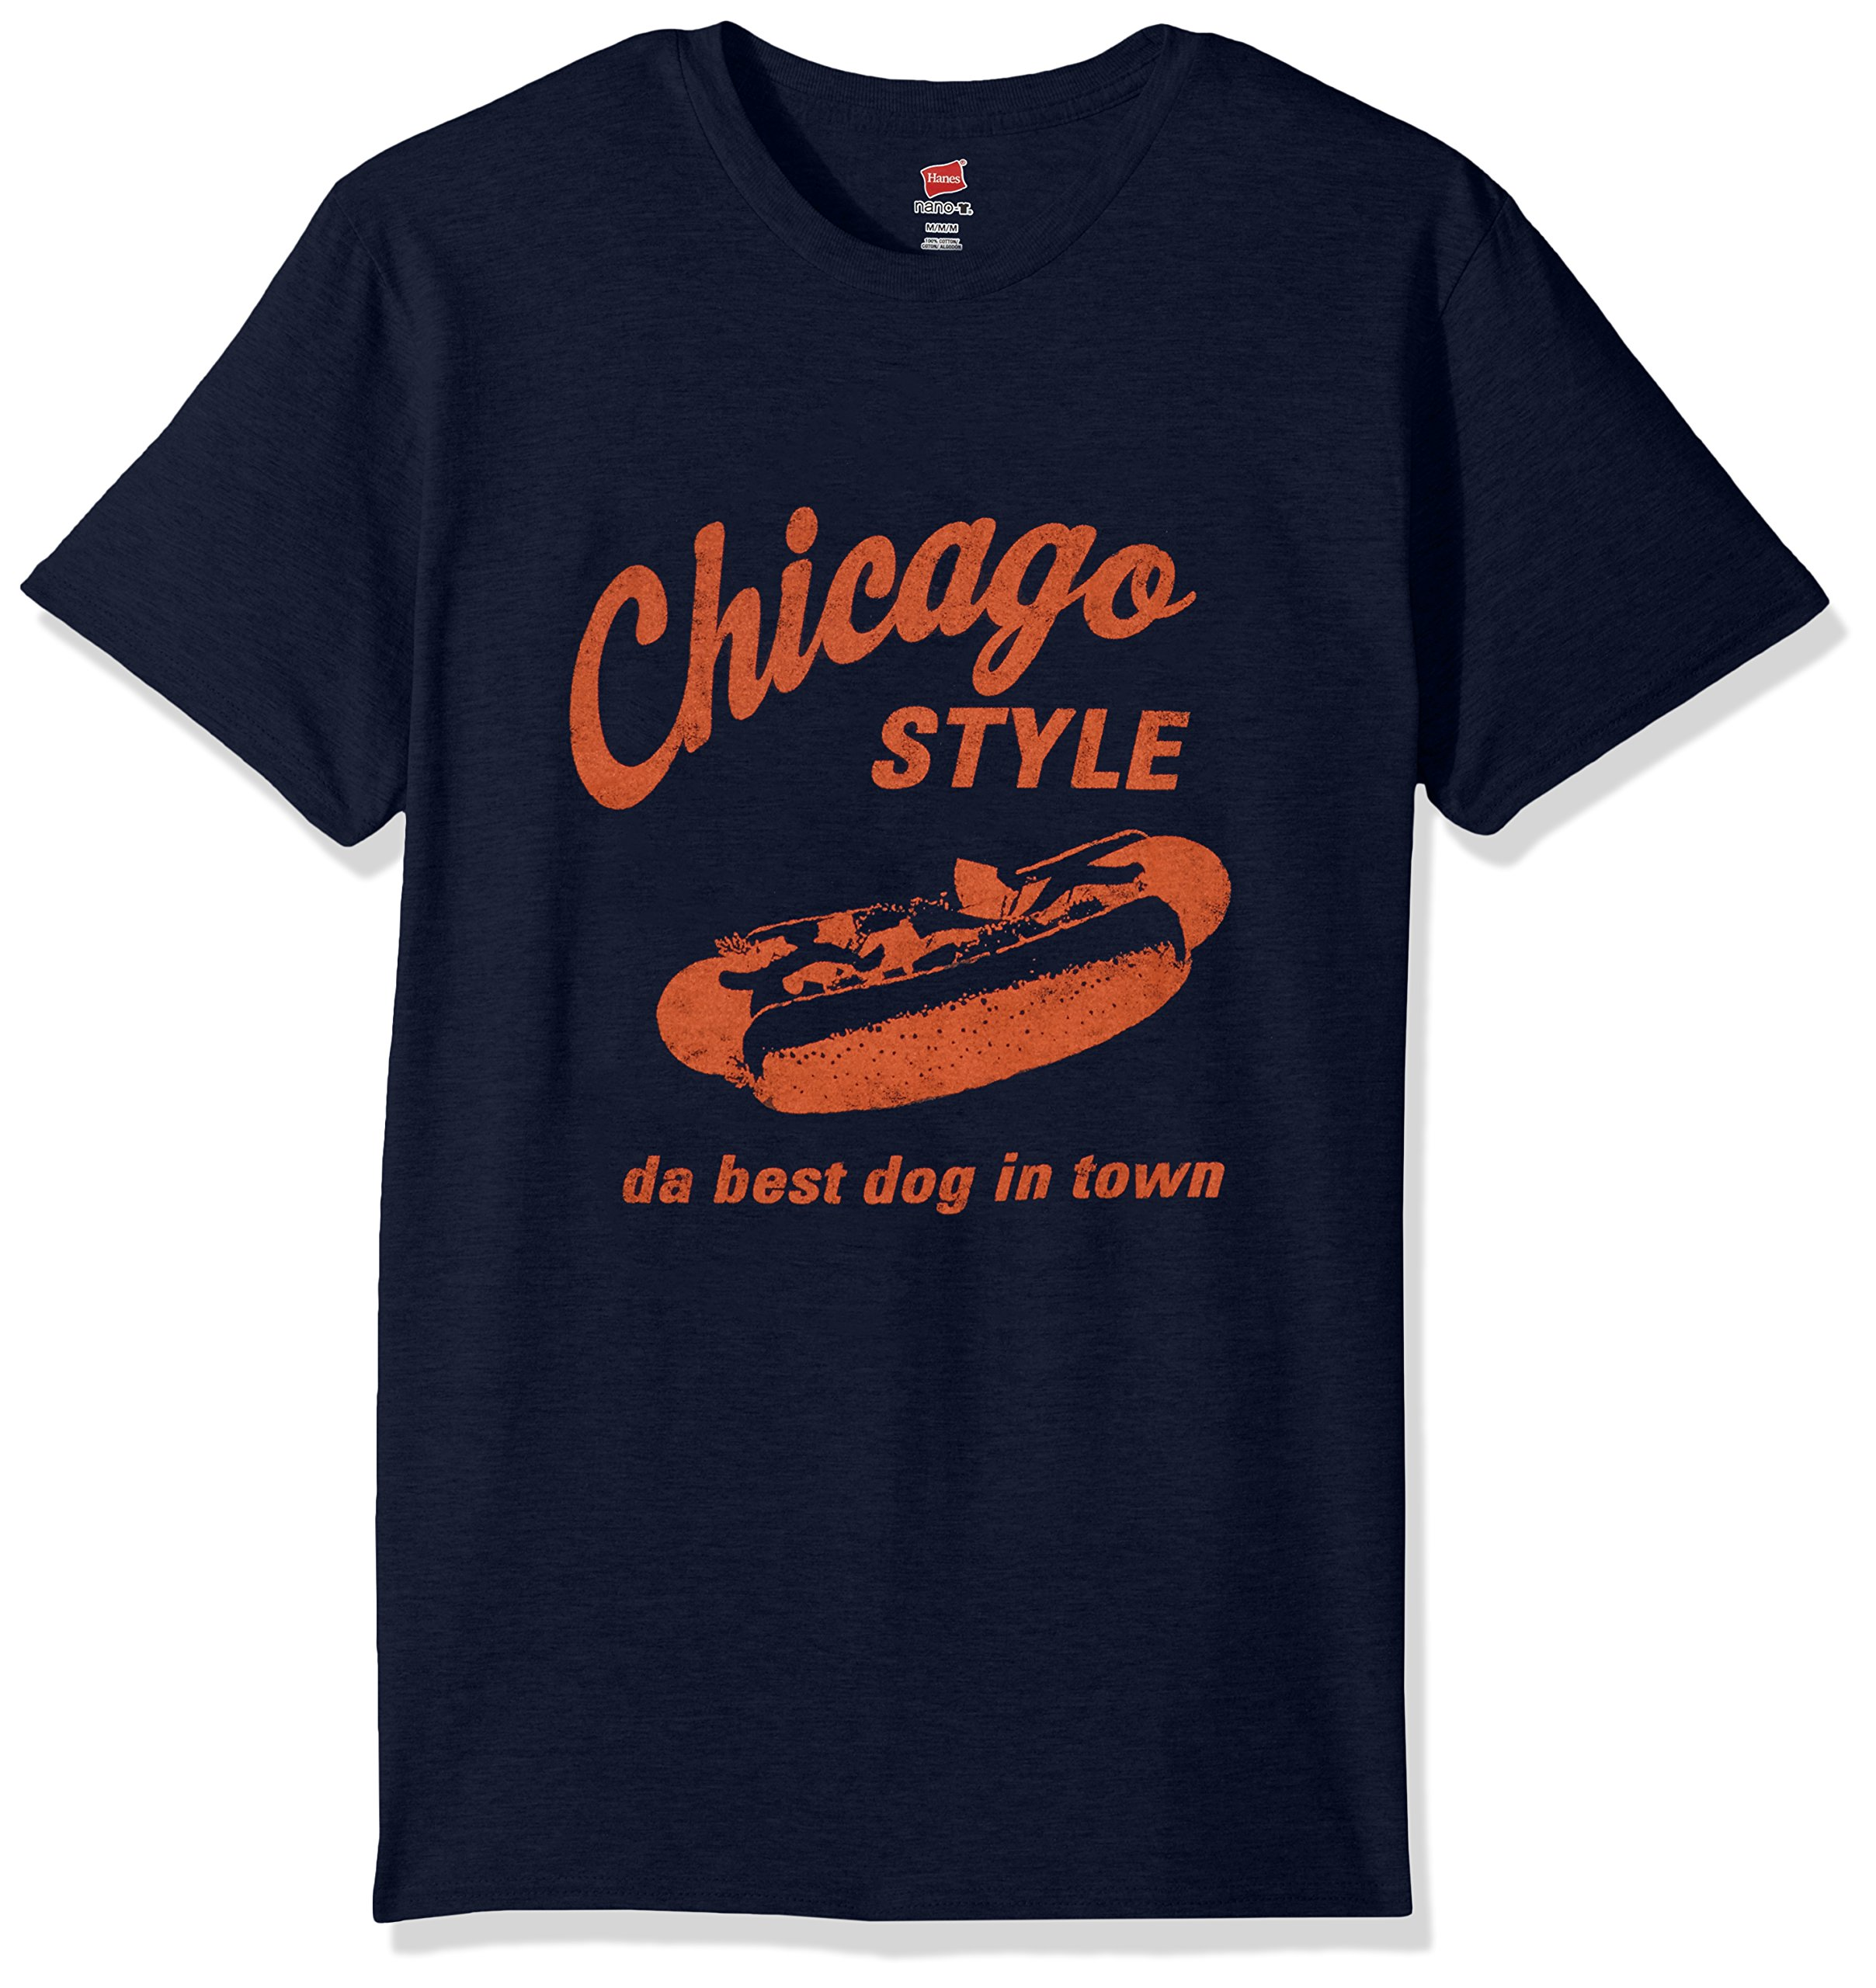 Hanes Men's Humor Graphic T-Shirt, Navy/Chicago, Small